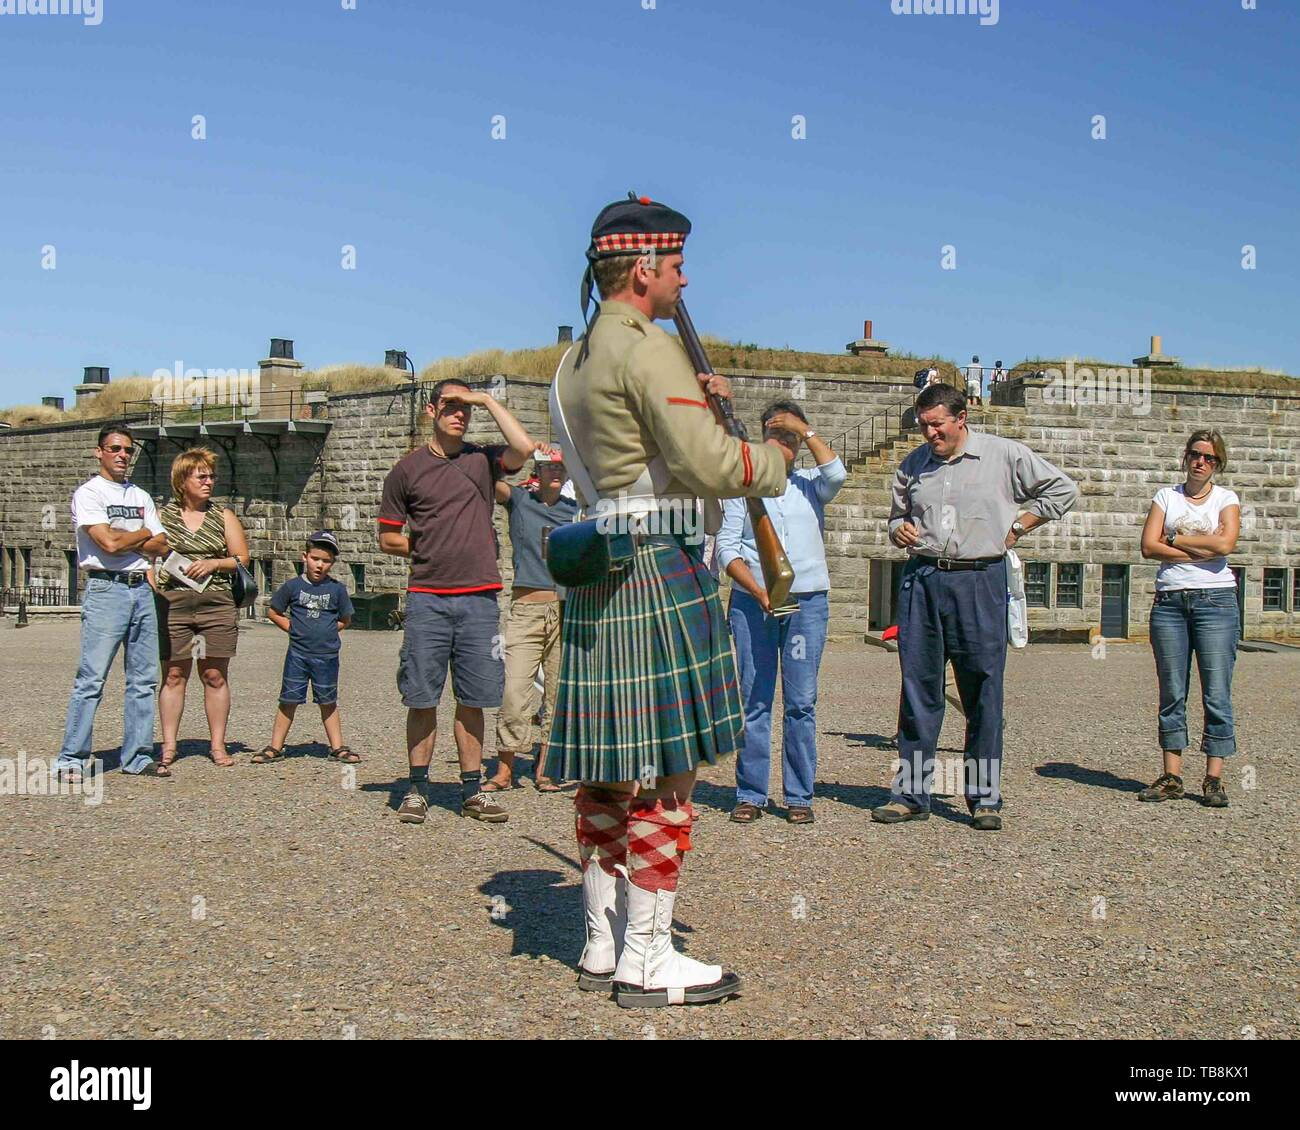 Halifax, Nova Scotia, Canada. 5th Sep, 2005. A re-enactor dressed in the uniform of the 78th Highlanders performs a presentation for tourists on Citadel Hill (Fort George), a National Historic Site in Halifax, Nova Scotia. A living history museum, the fort is among the most visited sites in Atlantic Canada. Credit: Arnold Drapkin/ZUMA Wire/Alamy Live News - Stock Image